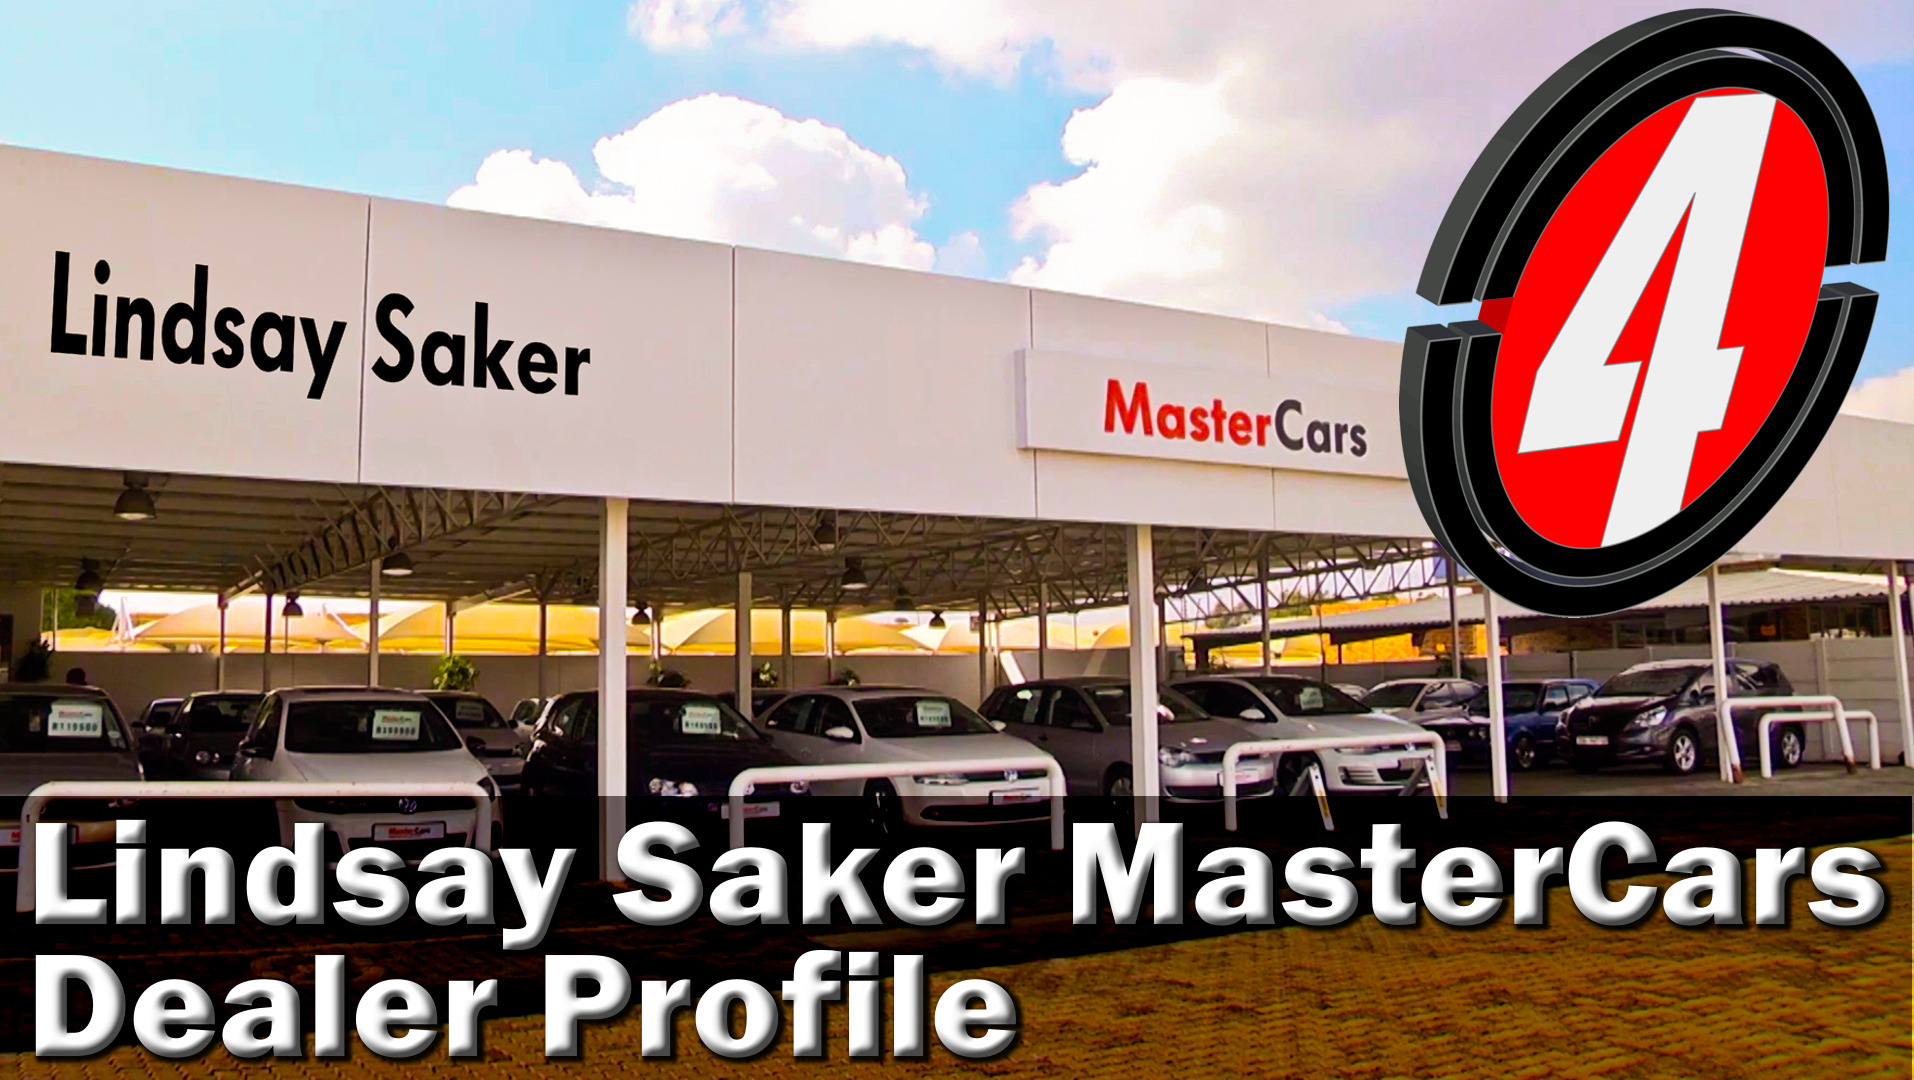 Lindsay Saker VW Alberton : Dealership Review